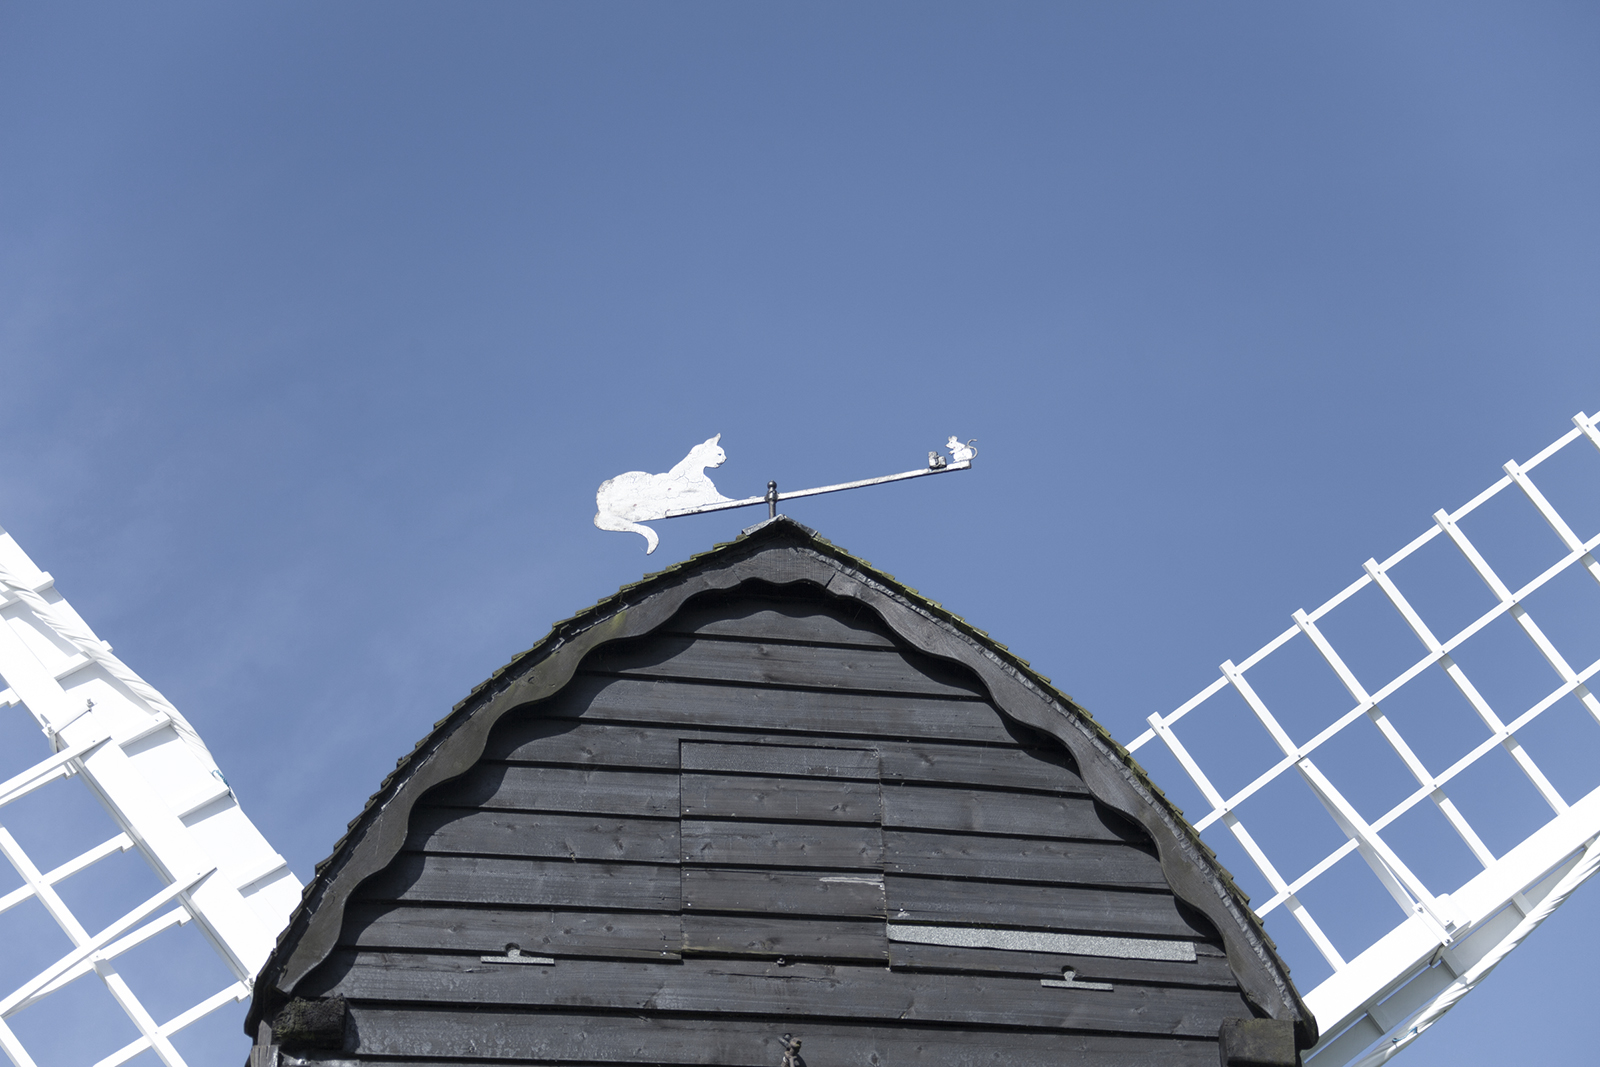 Iconic windmill restored at Avoncroft Museum